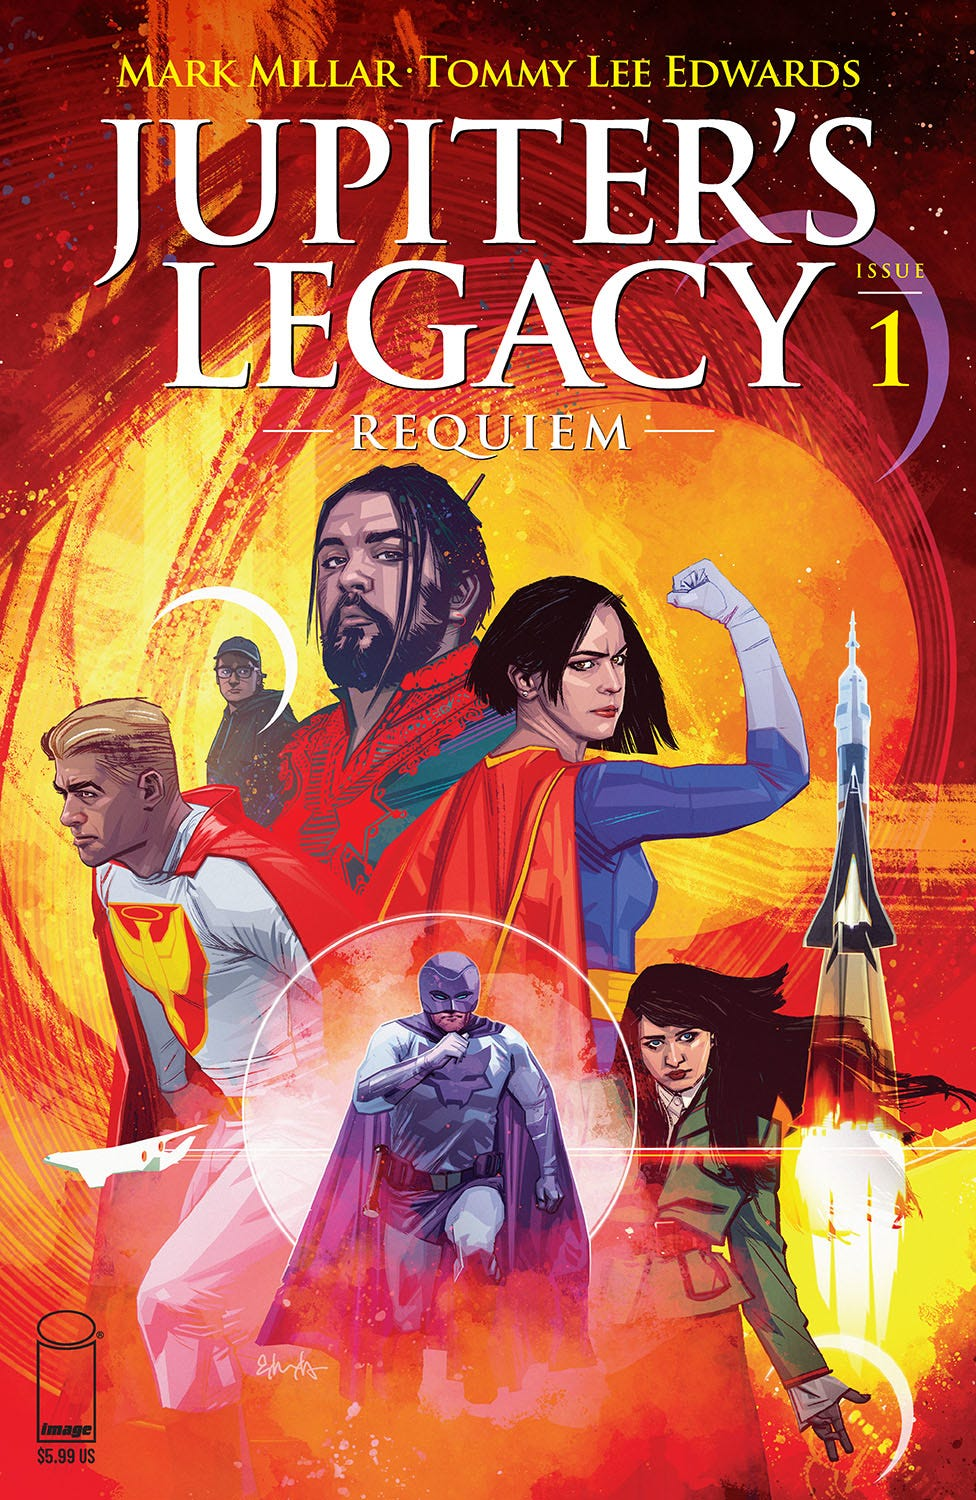 Jupiters Legacy Requiem #1 (of 5) (Cover A - Edwards)